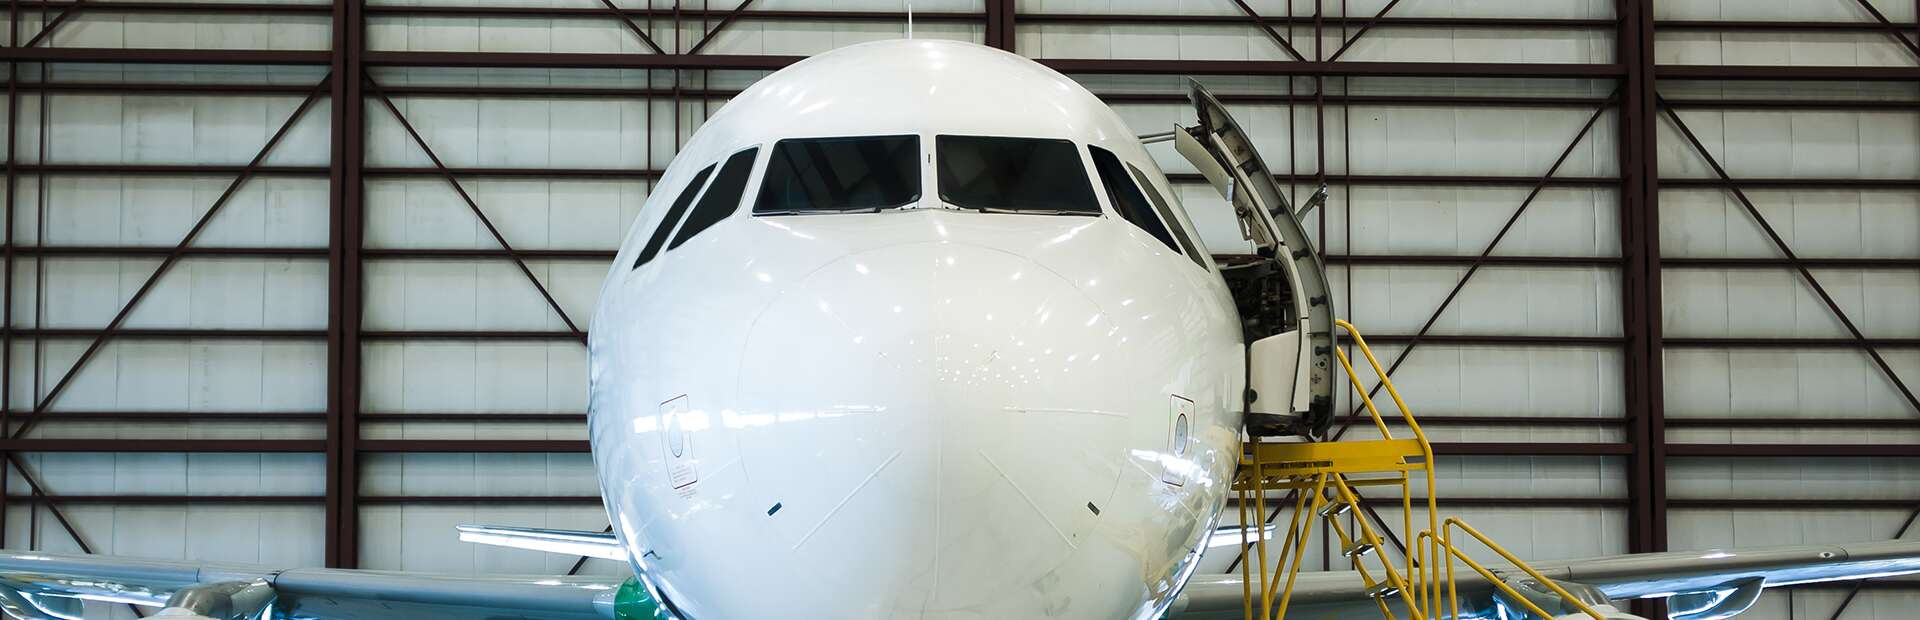 the nose of a private jet